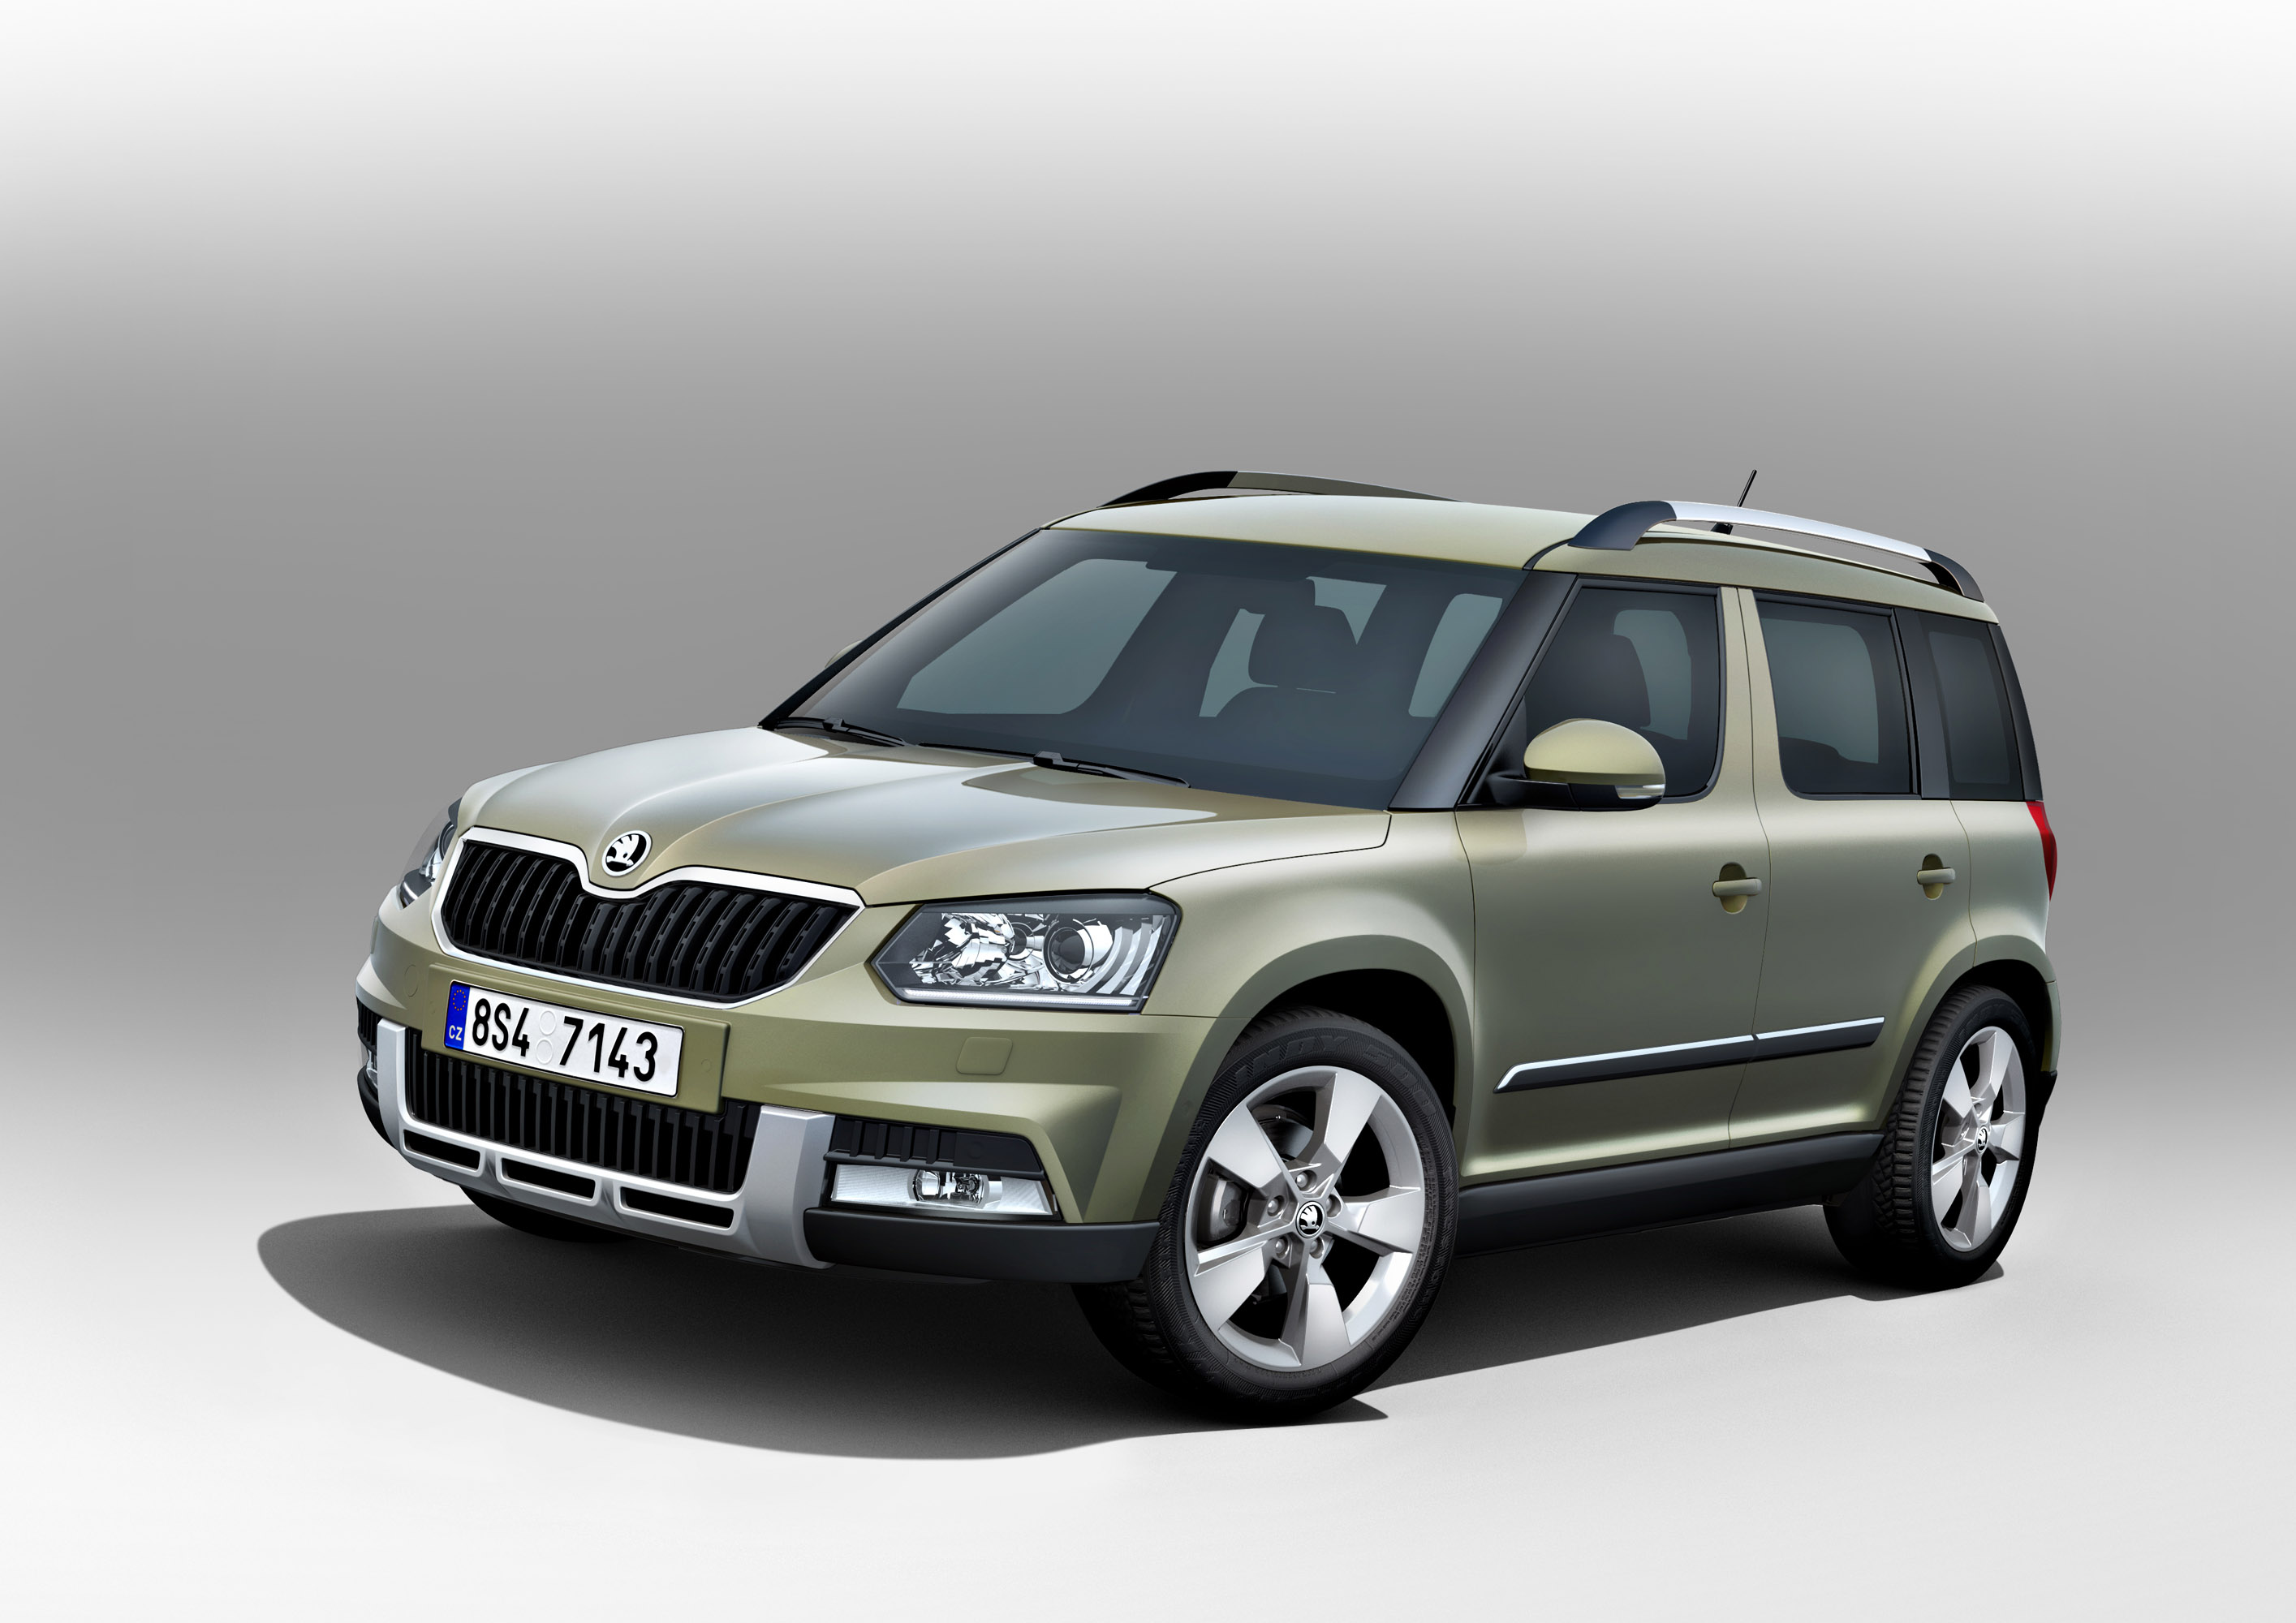 Skoda Yeti Facelift - Specifications And Pricing Announced